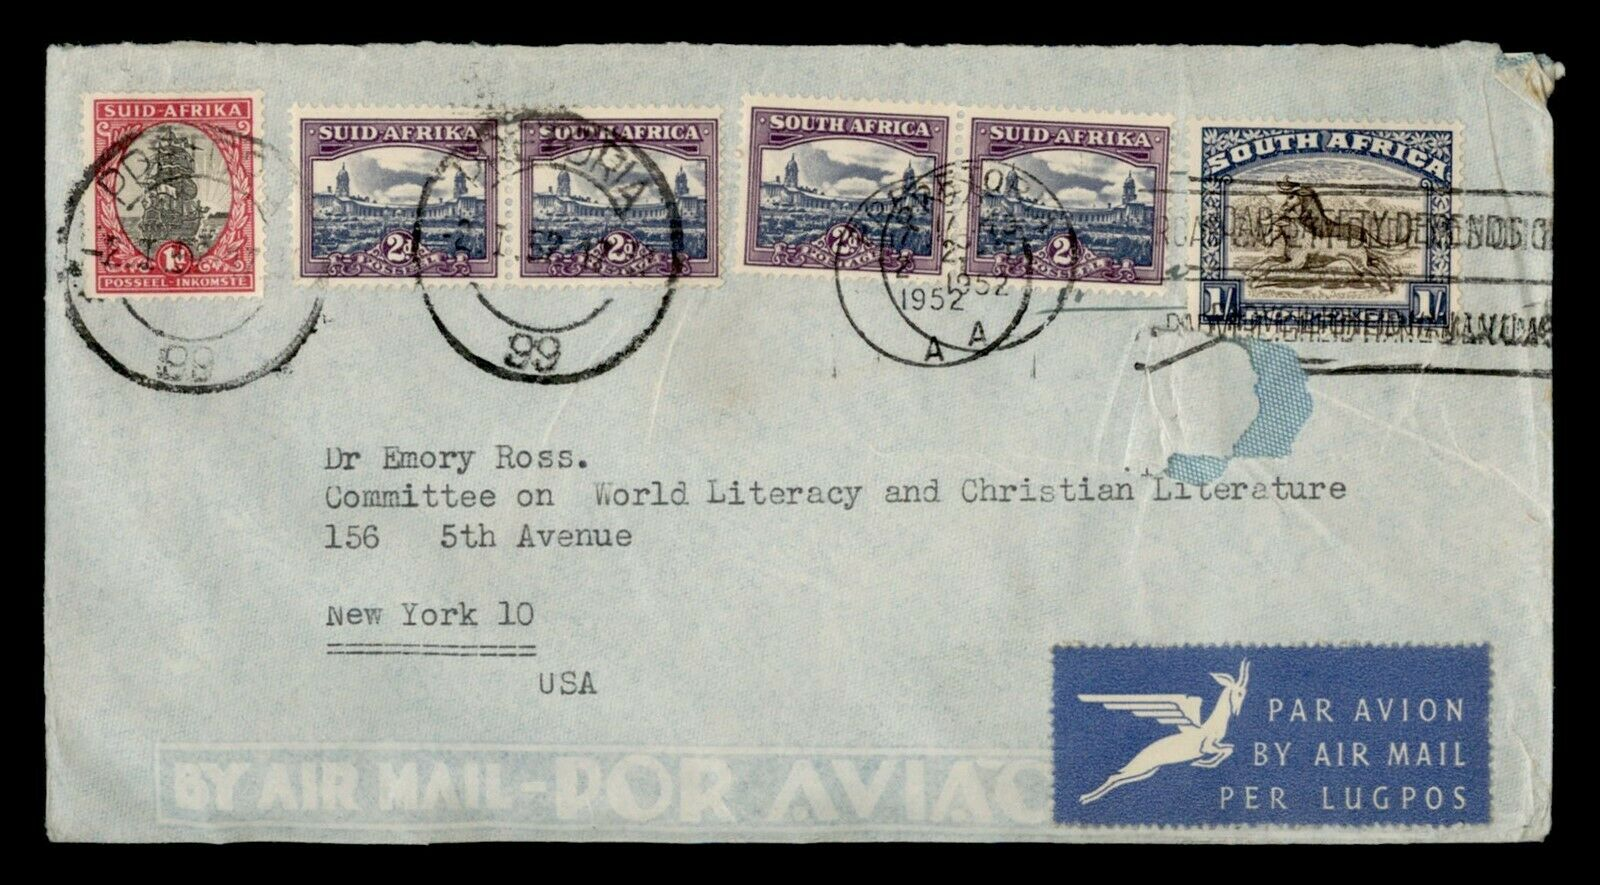 DR WHO 1952 SOUTH AFRICA PRETORIA SLOGAN CANCEL AIRMAIL TO USA F81352 - $0.50